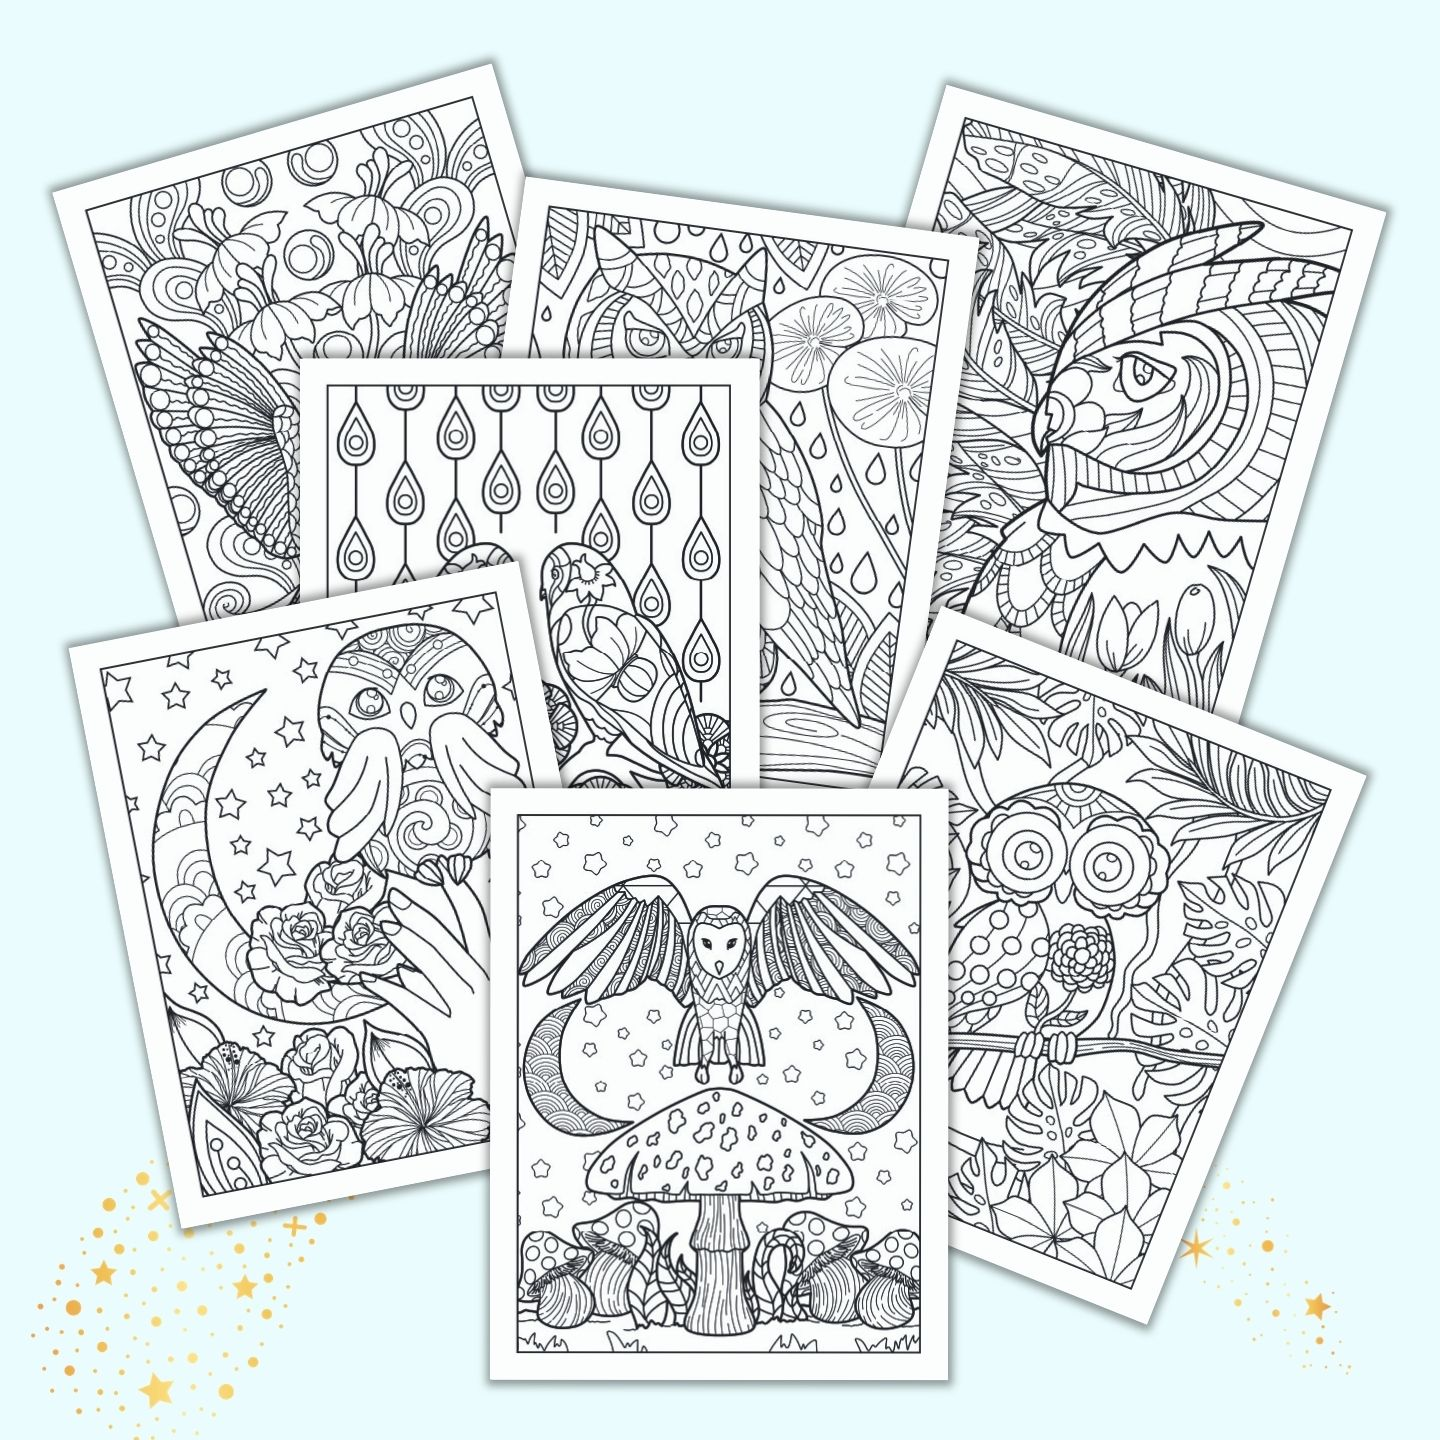 21 Spring Coloring Pages Free Printable Spring Adult Coloring Pages The Artisan Life